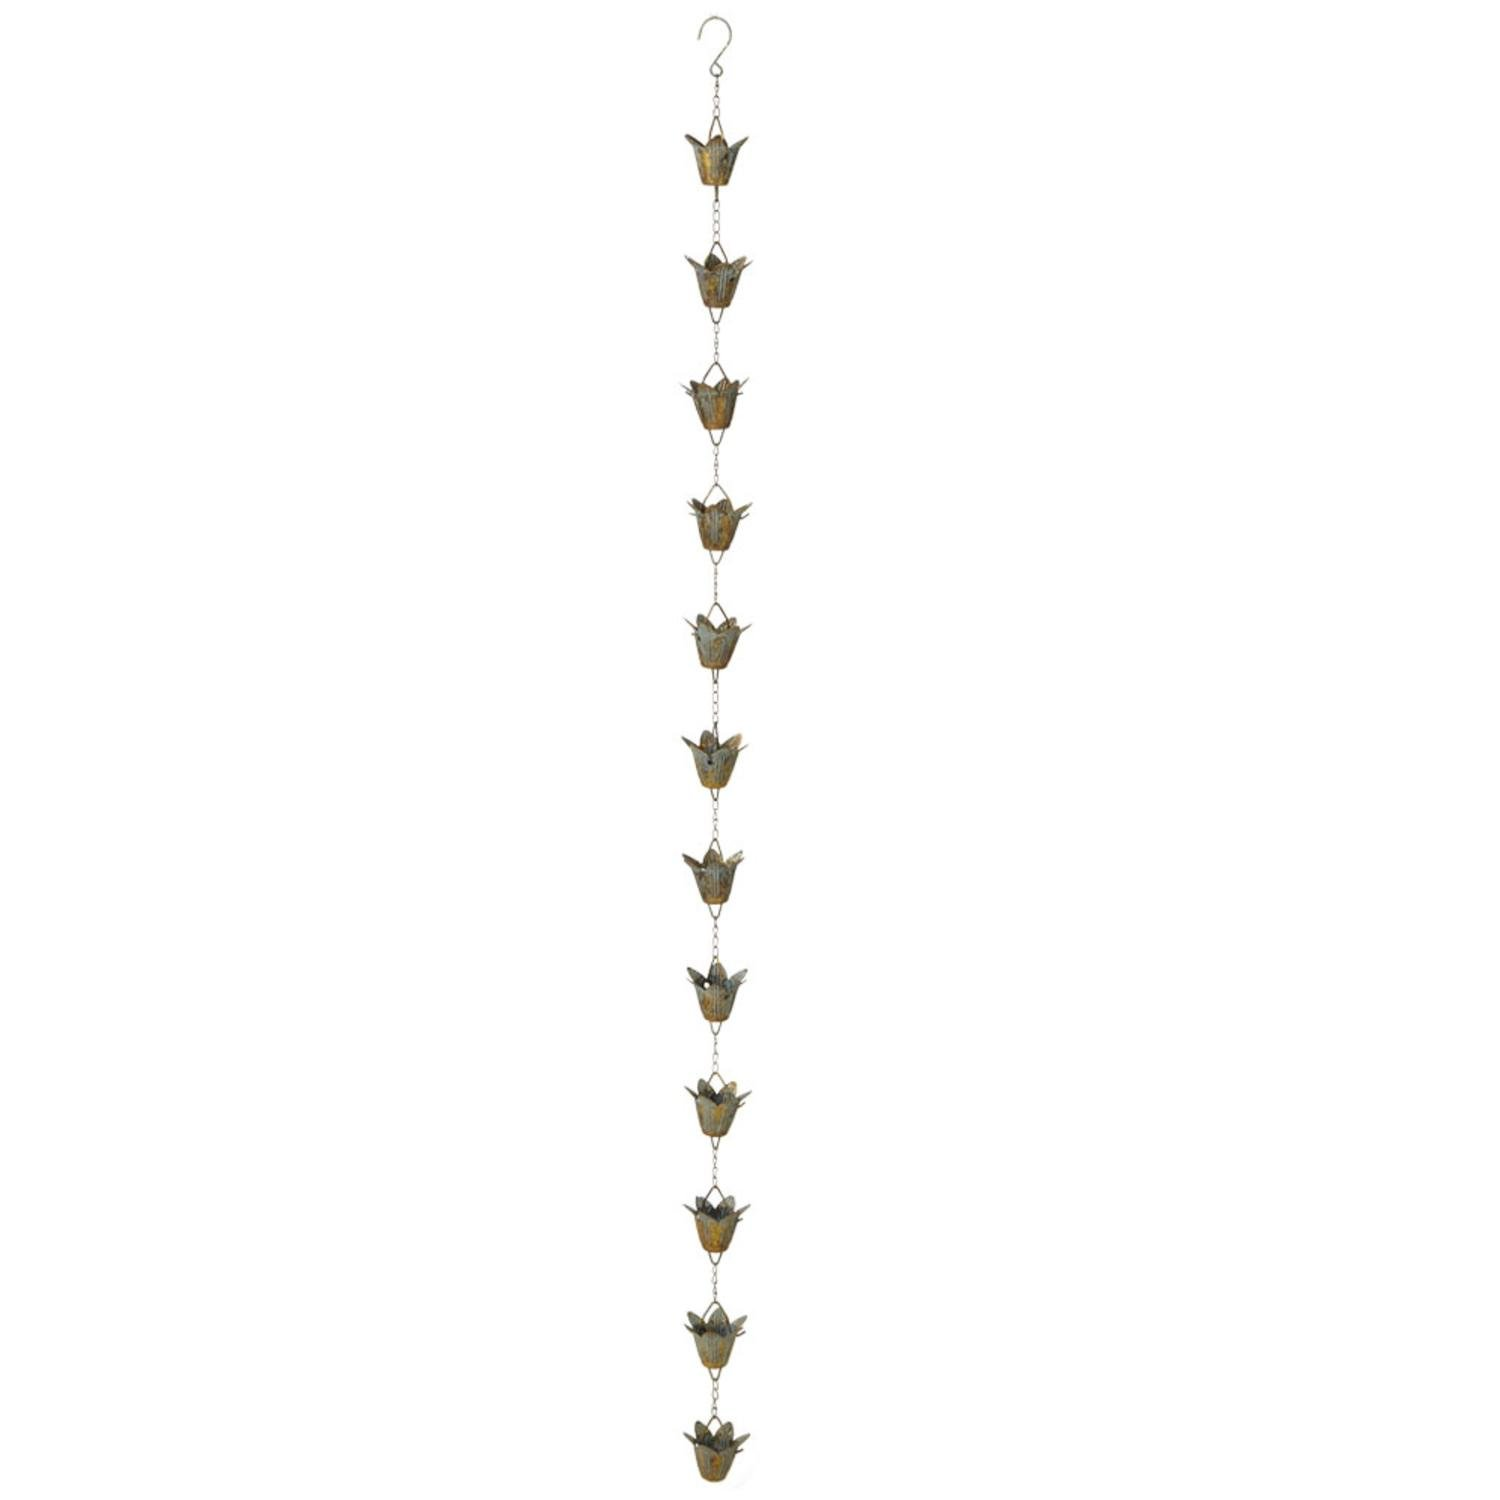 Diva At Home Set of 2 Brown and Teal Rustic Patina Lily Iron Rain Chains 57.5''